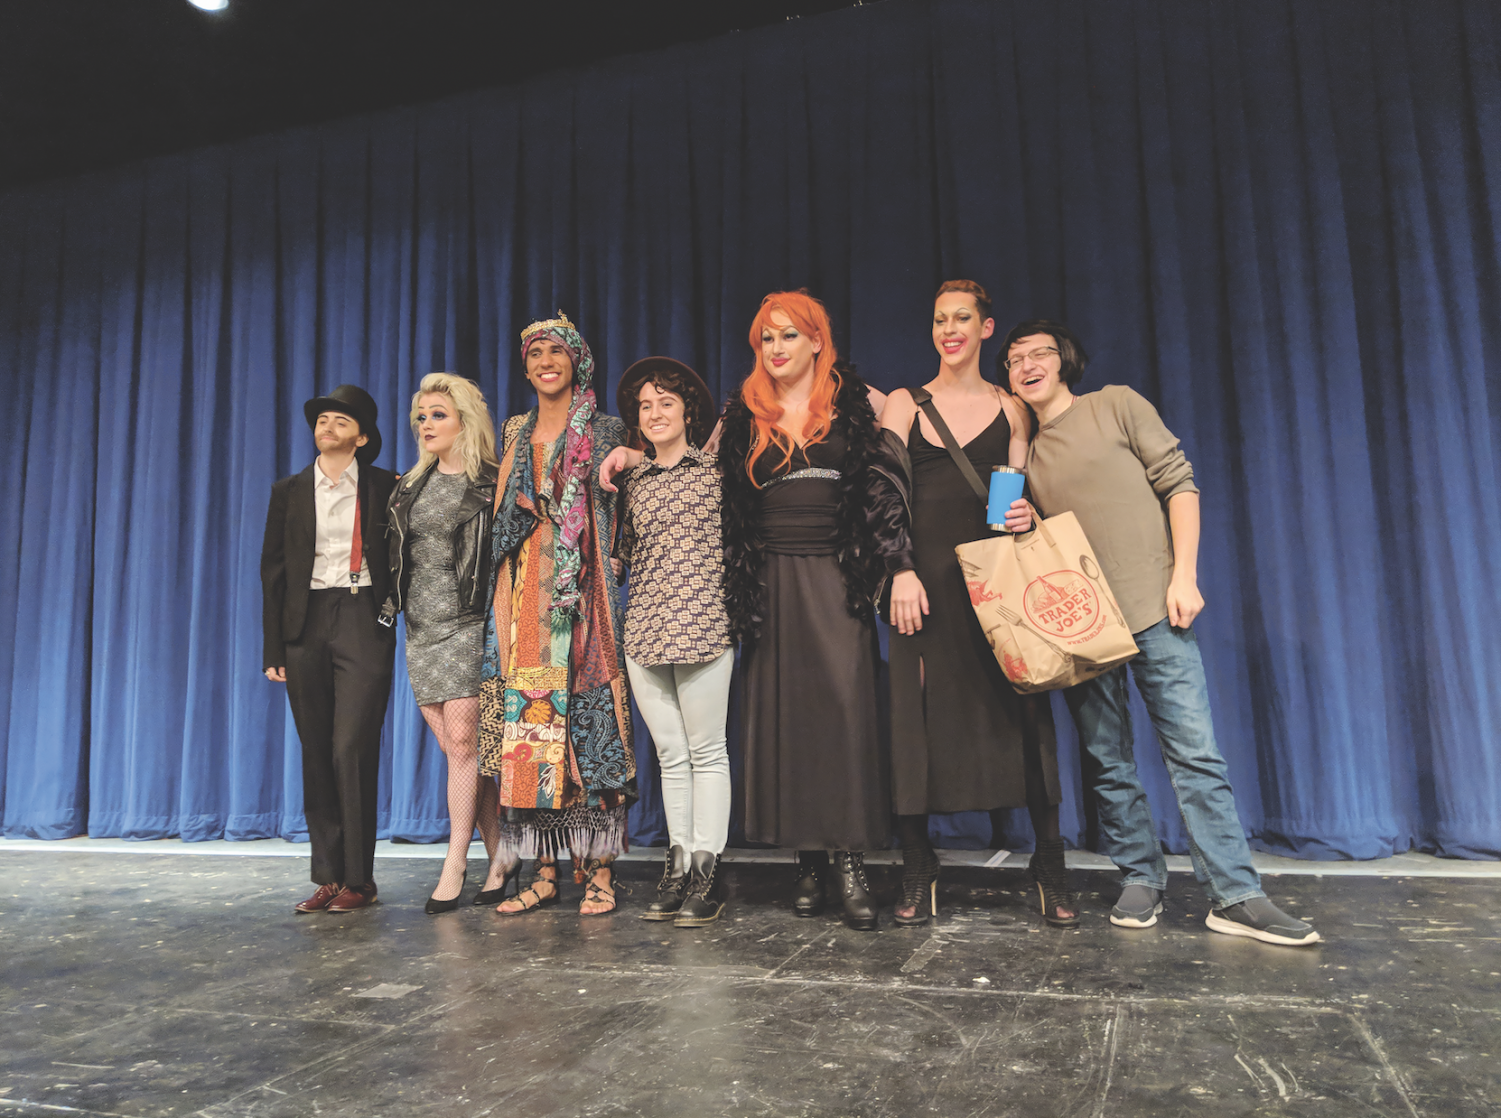 Fordham's first ever drag show was met with criticism from conservative forces outside the university. (COLIN SHEELEY/THE OBSERVER)